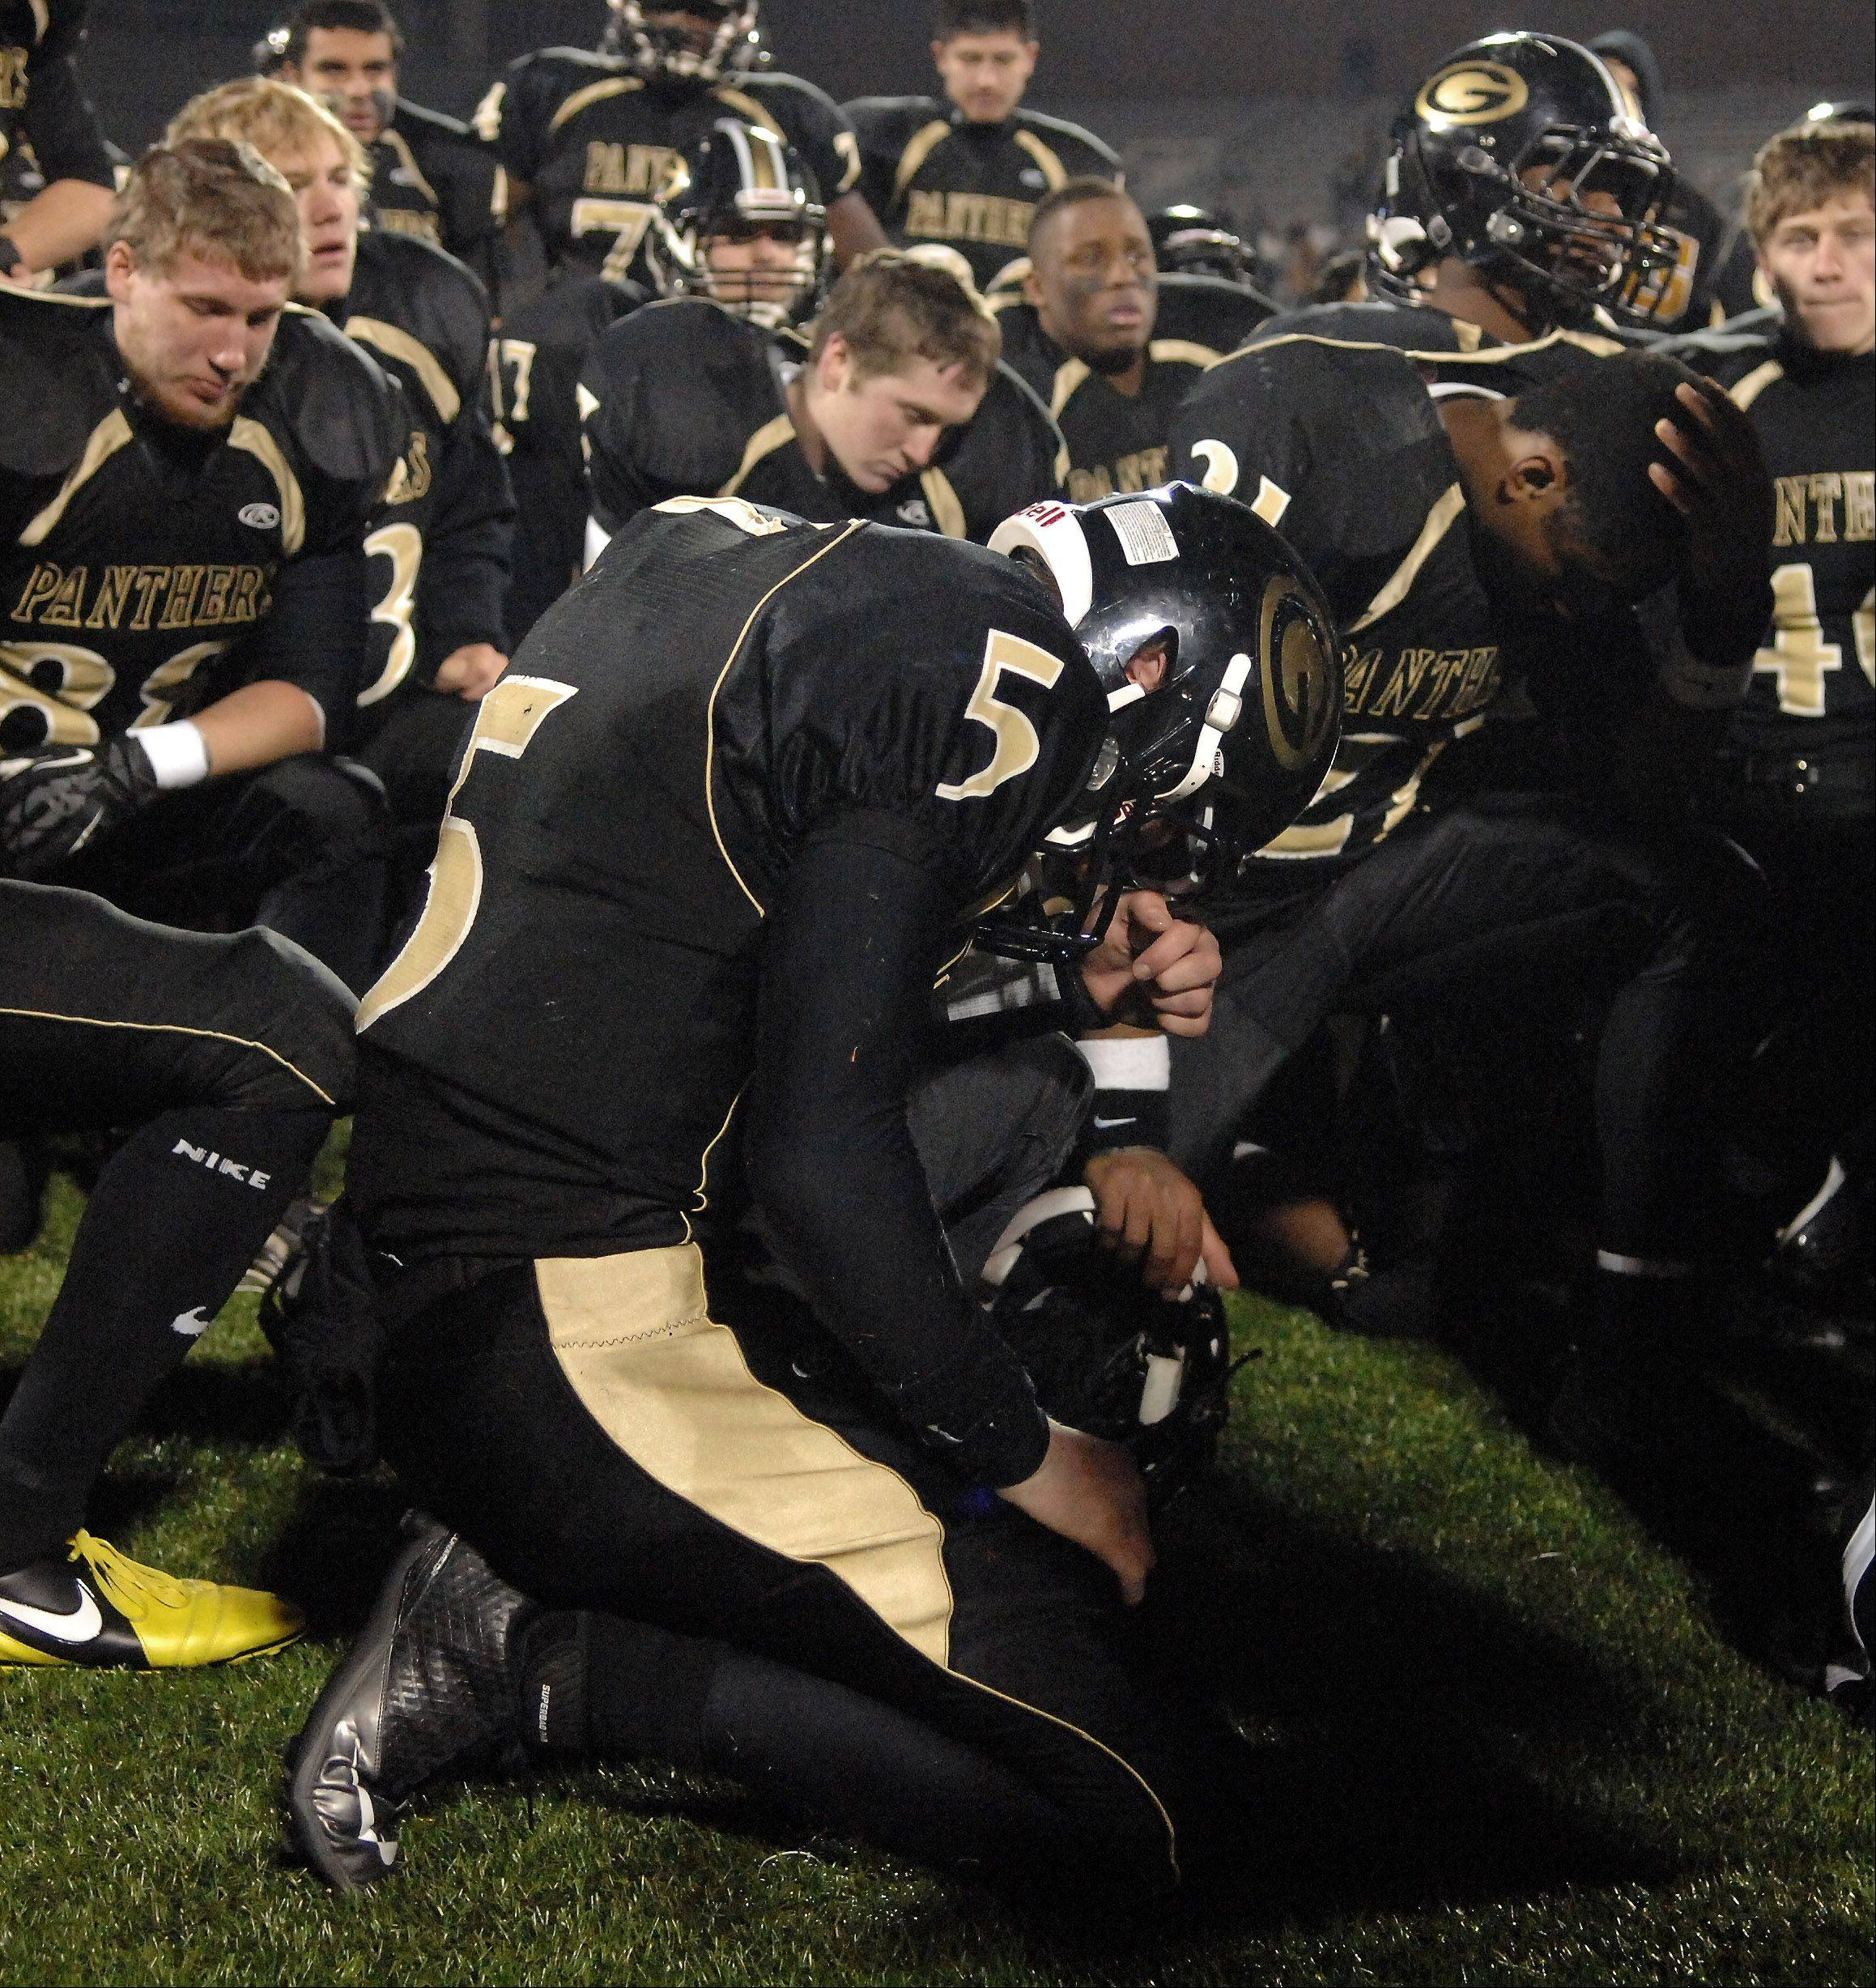 Glenbard North's Bran Murphy bows his head following the Panthers' loss to Mt. Carmel during Saturday's Class 8A state title game at Memorial Stadium in Champaign.